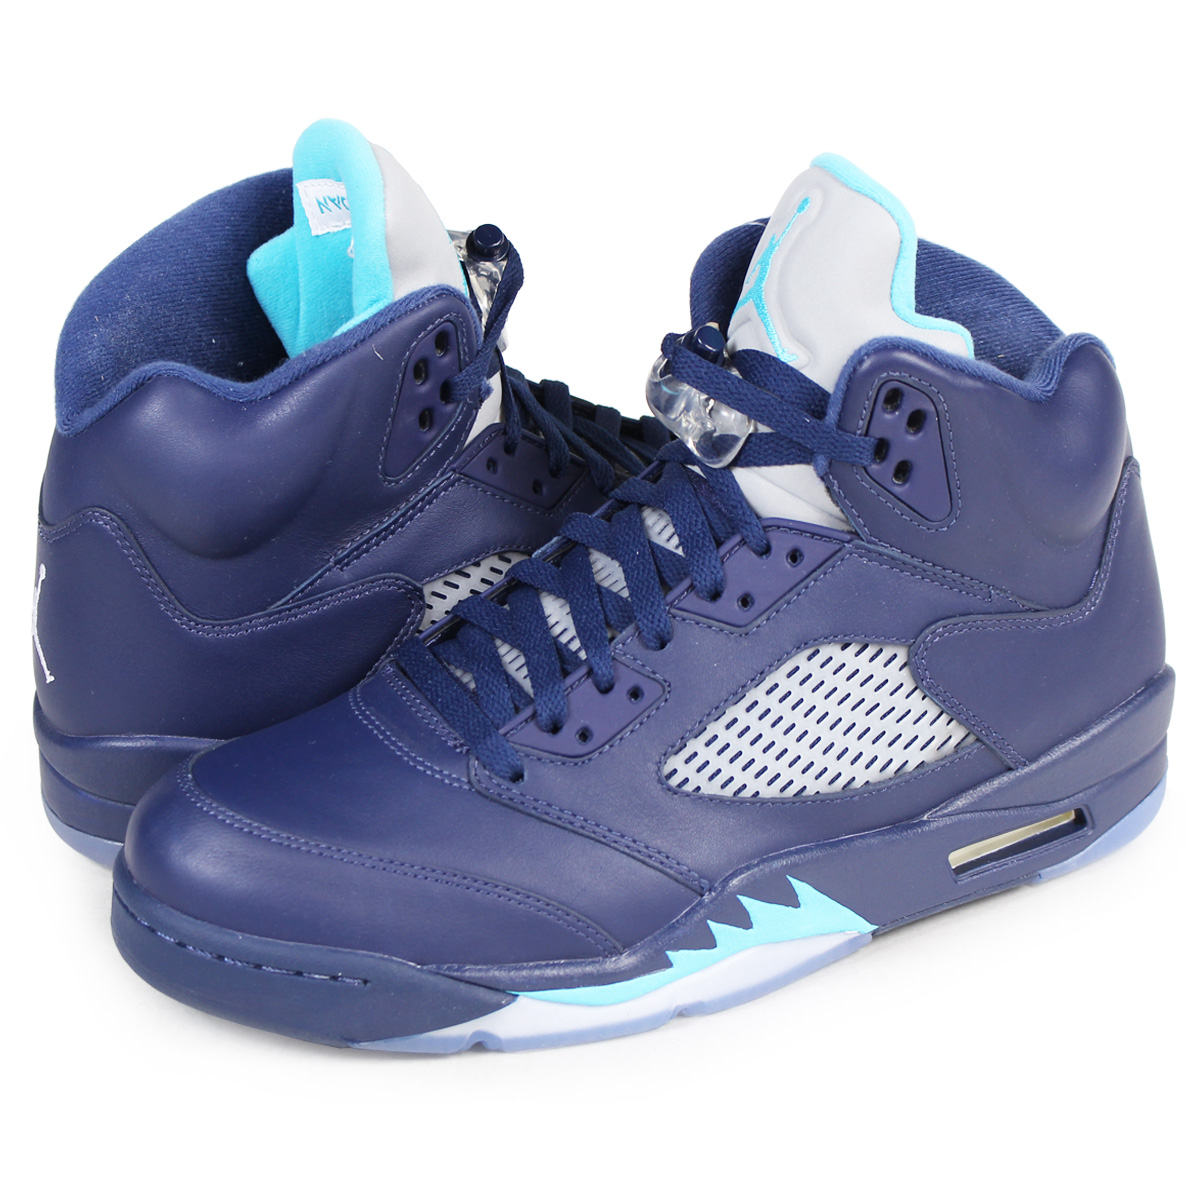 b619366fc18 ALLSPORTS: NIKE AIR JORDAN 5 RETRO HORNETS Nike Air Jordan 5 nostalgic  sneakers 136,027-405 men's shoes blue [10/4 Shinnyu load] | Rakuten Global  Market